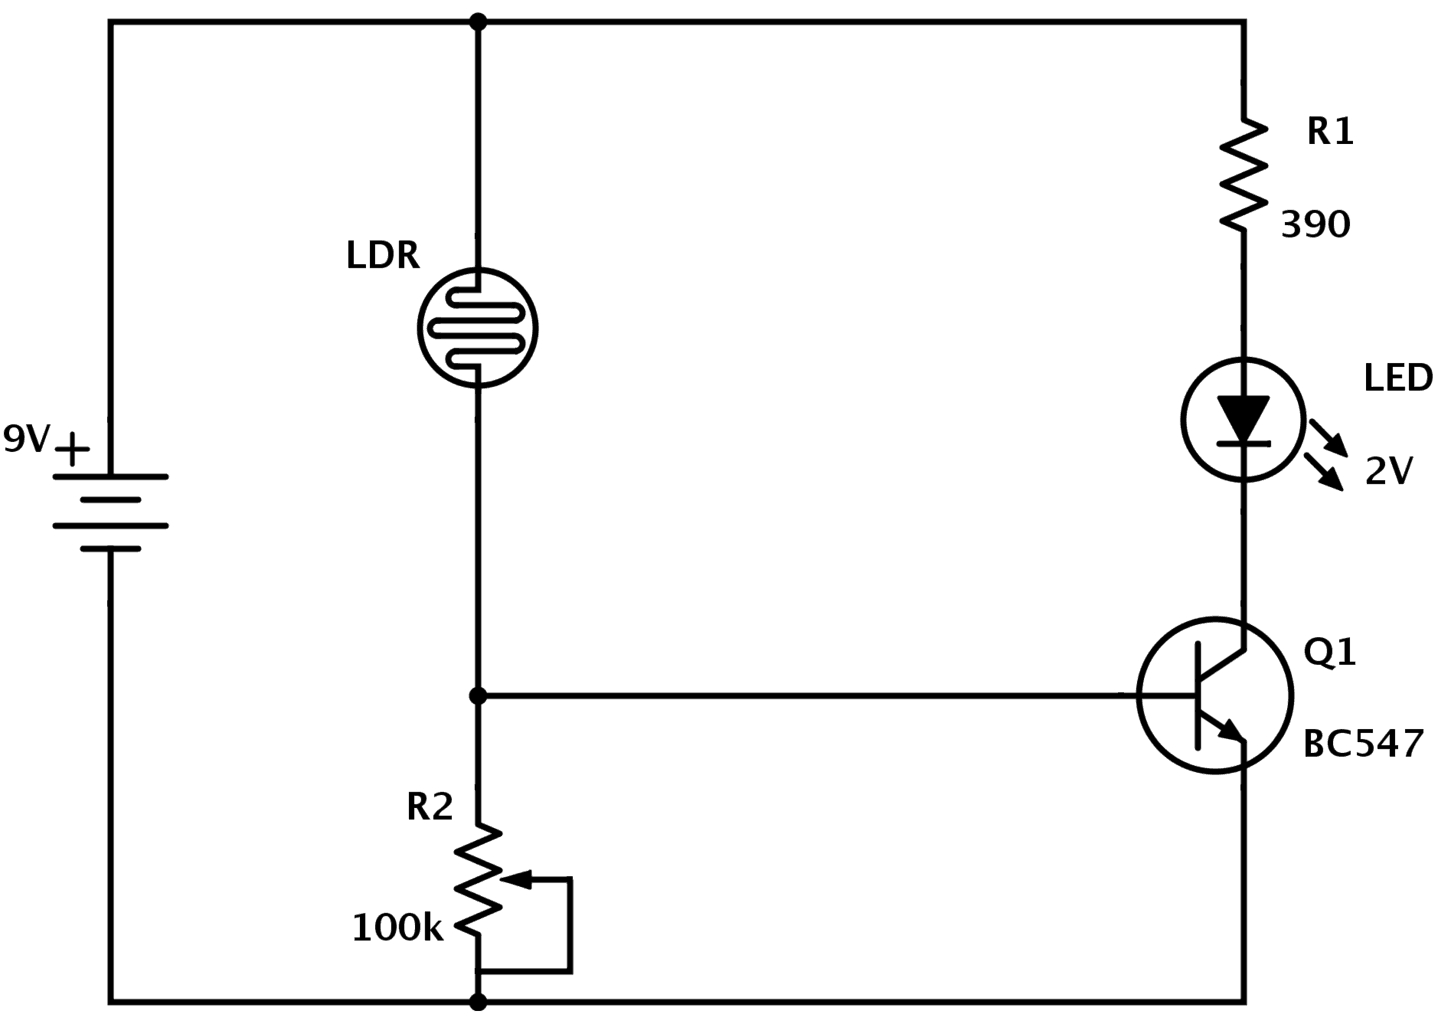 Basic Schematic Wiring Diagrams - Wiring Block Diagram - Schematic Wiring Diagram